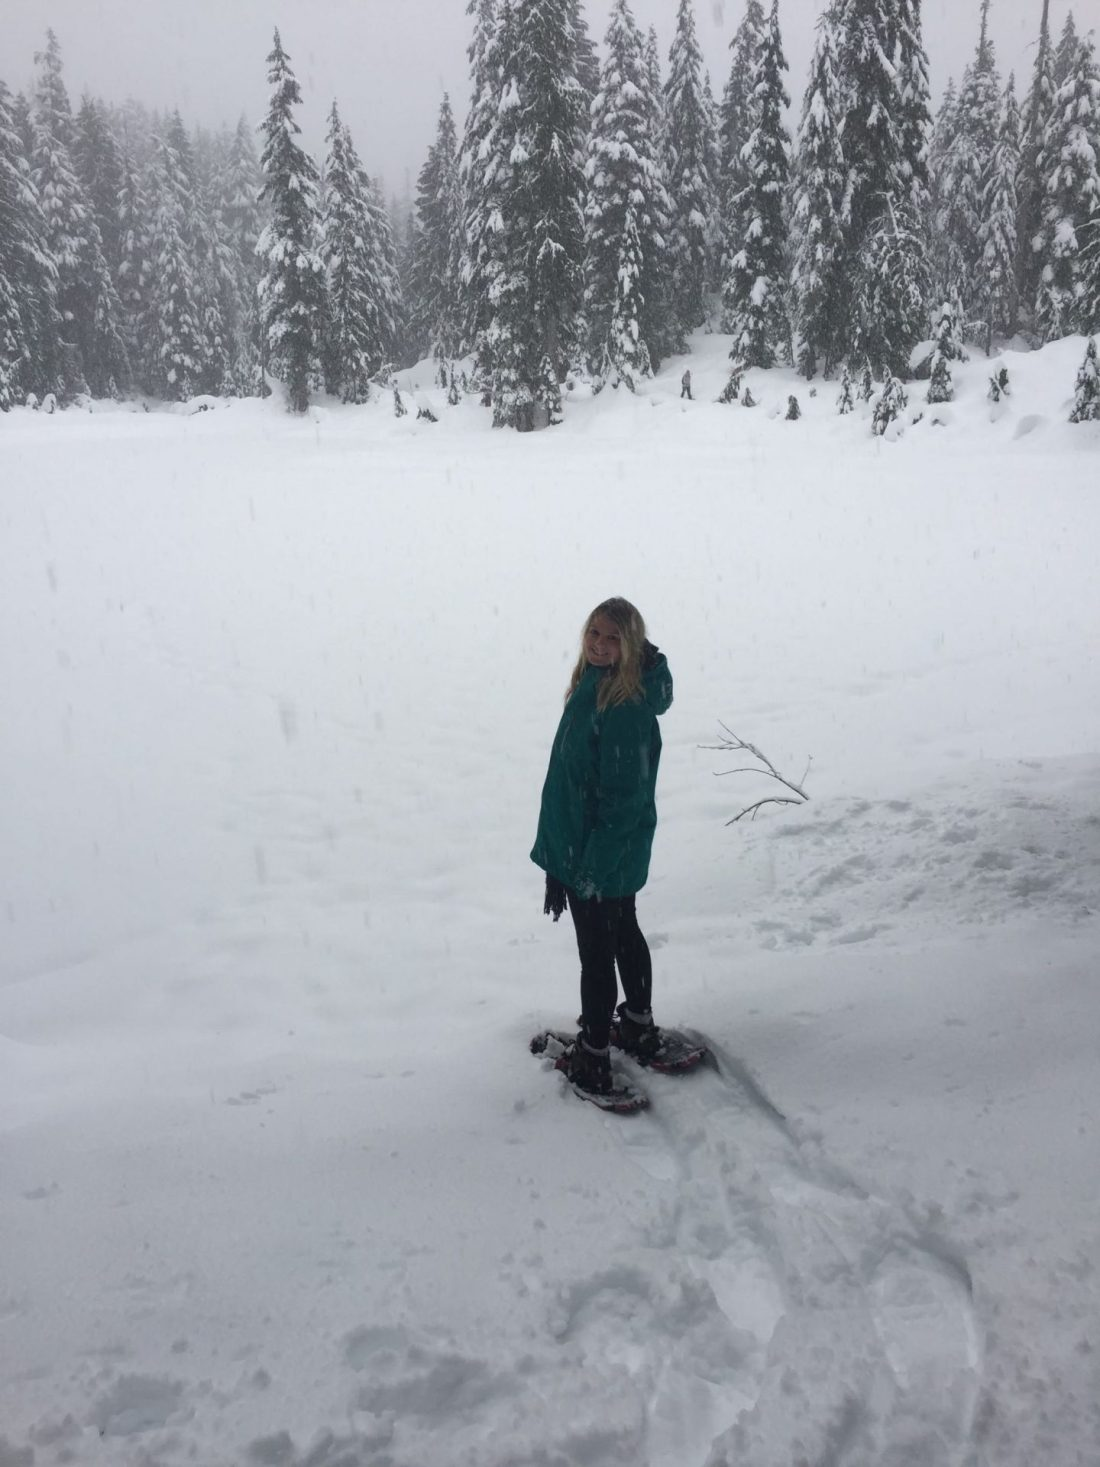 Laura on Mount Seymour, Vancouver